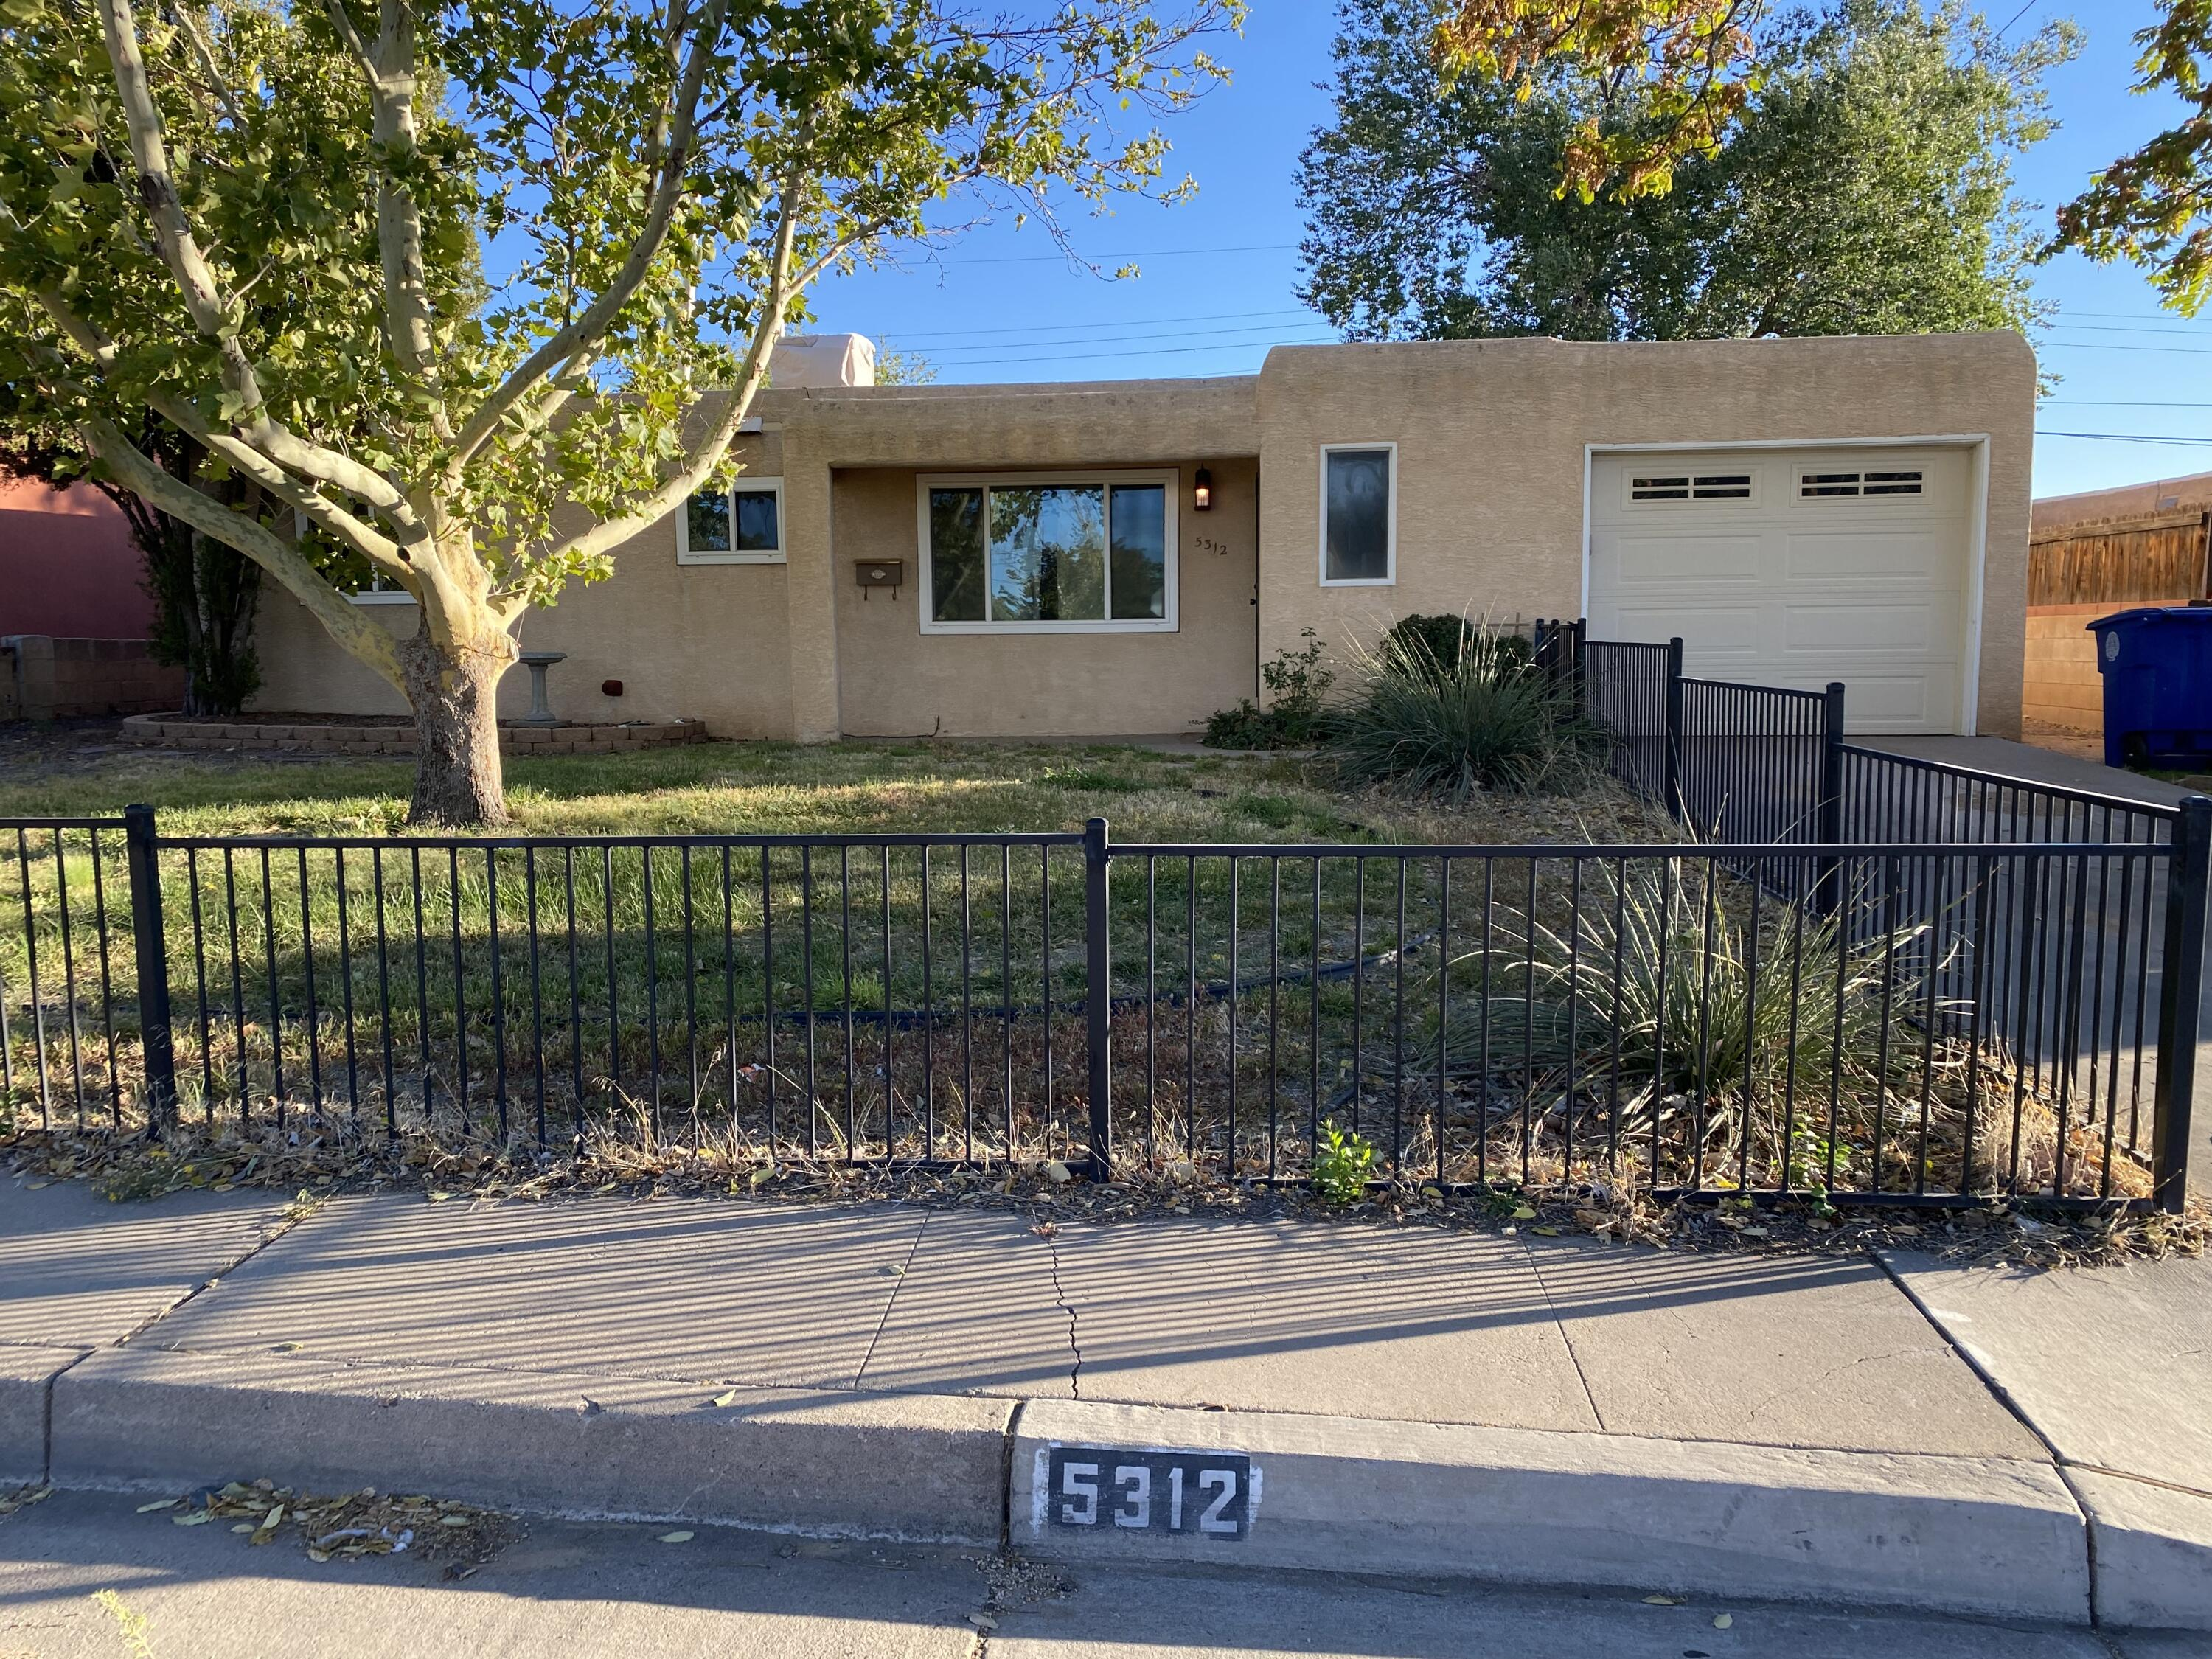 Great location and loaded with charm! This move-in ready open floorplan has updated windows, garage door, lighting, furnace, evaporative cooler, electric range, and refrigerator. Landscaped fully fenced front and back yard with grass, shade trees, and fruit trees. Washer and dryer included